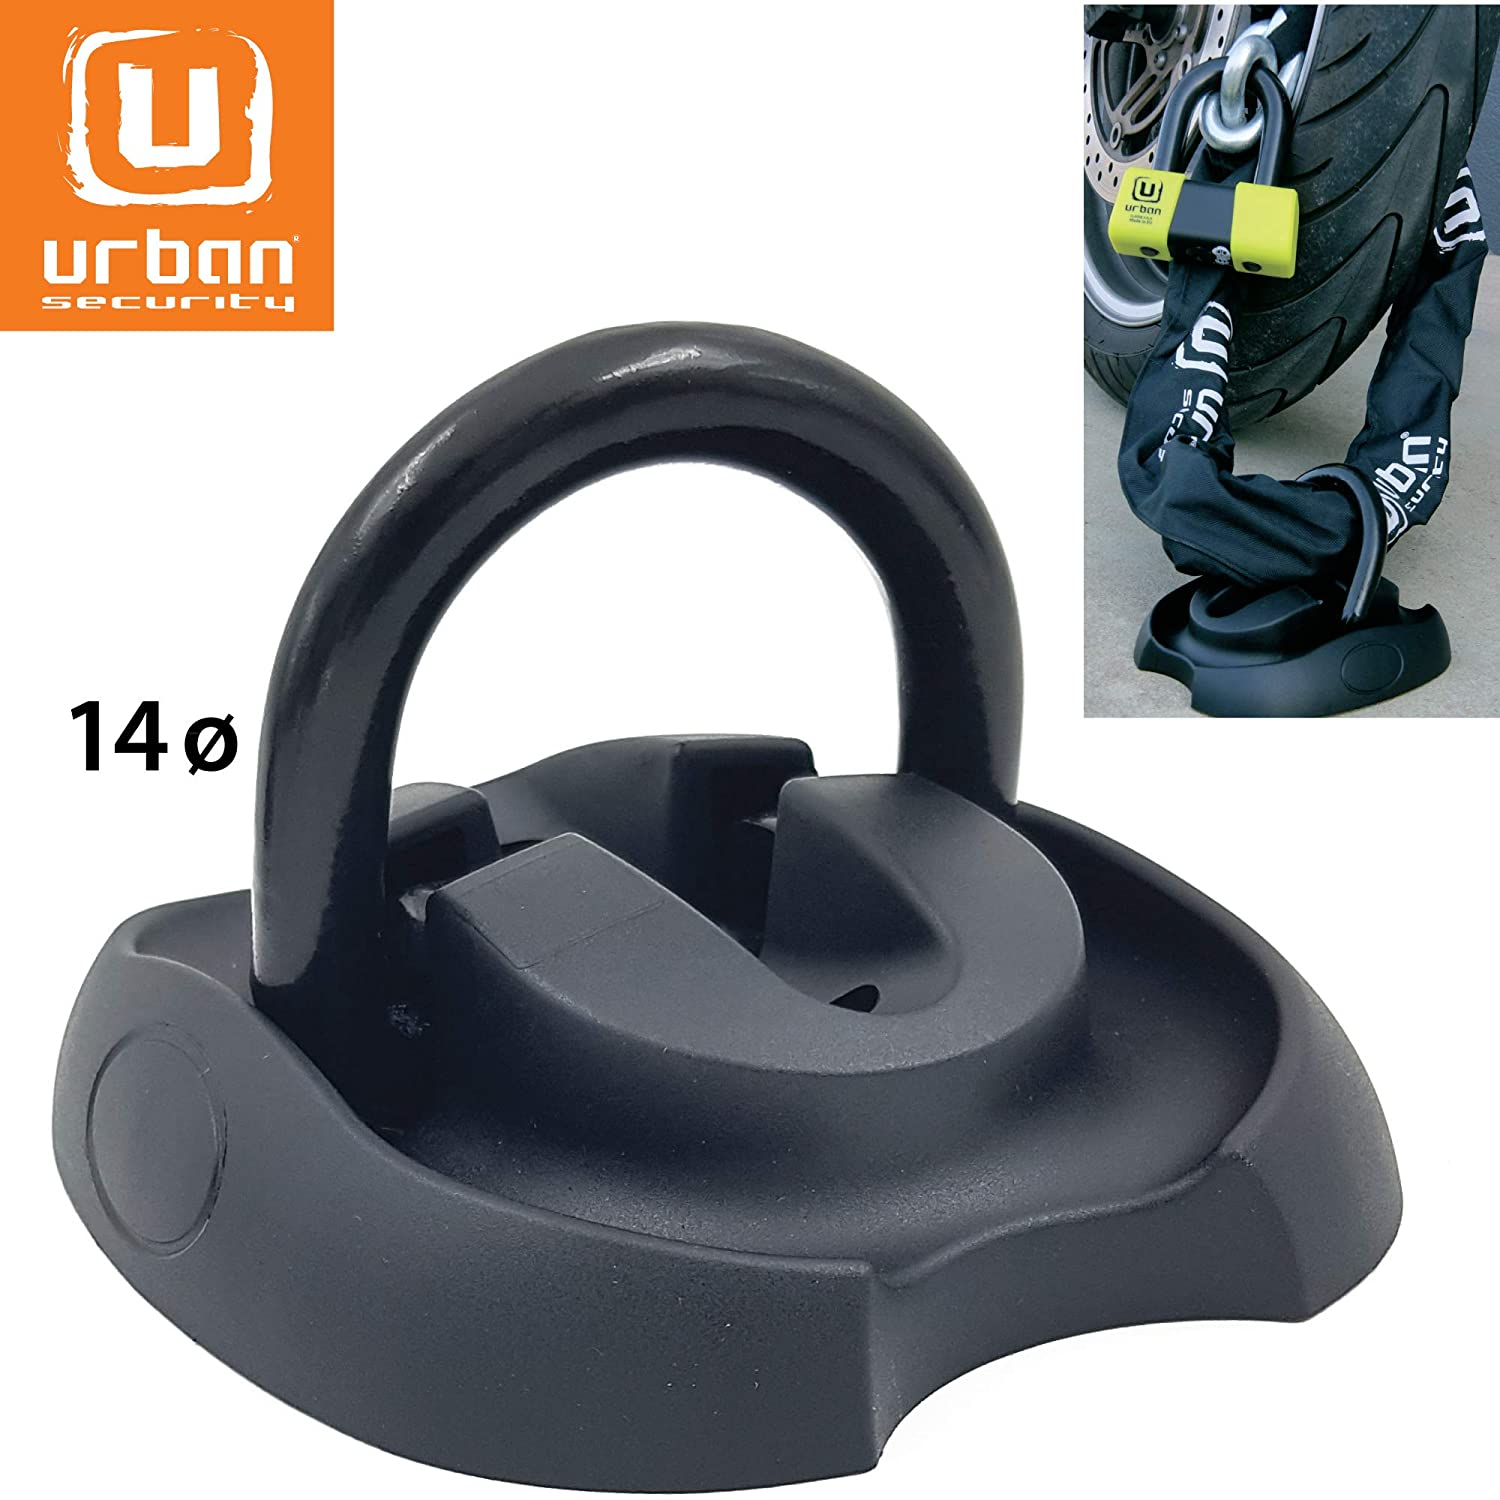 14 mm D-Ring Diameter Wall Urban Security Floor Ground Anchor security lock